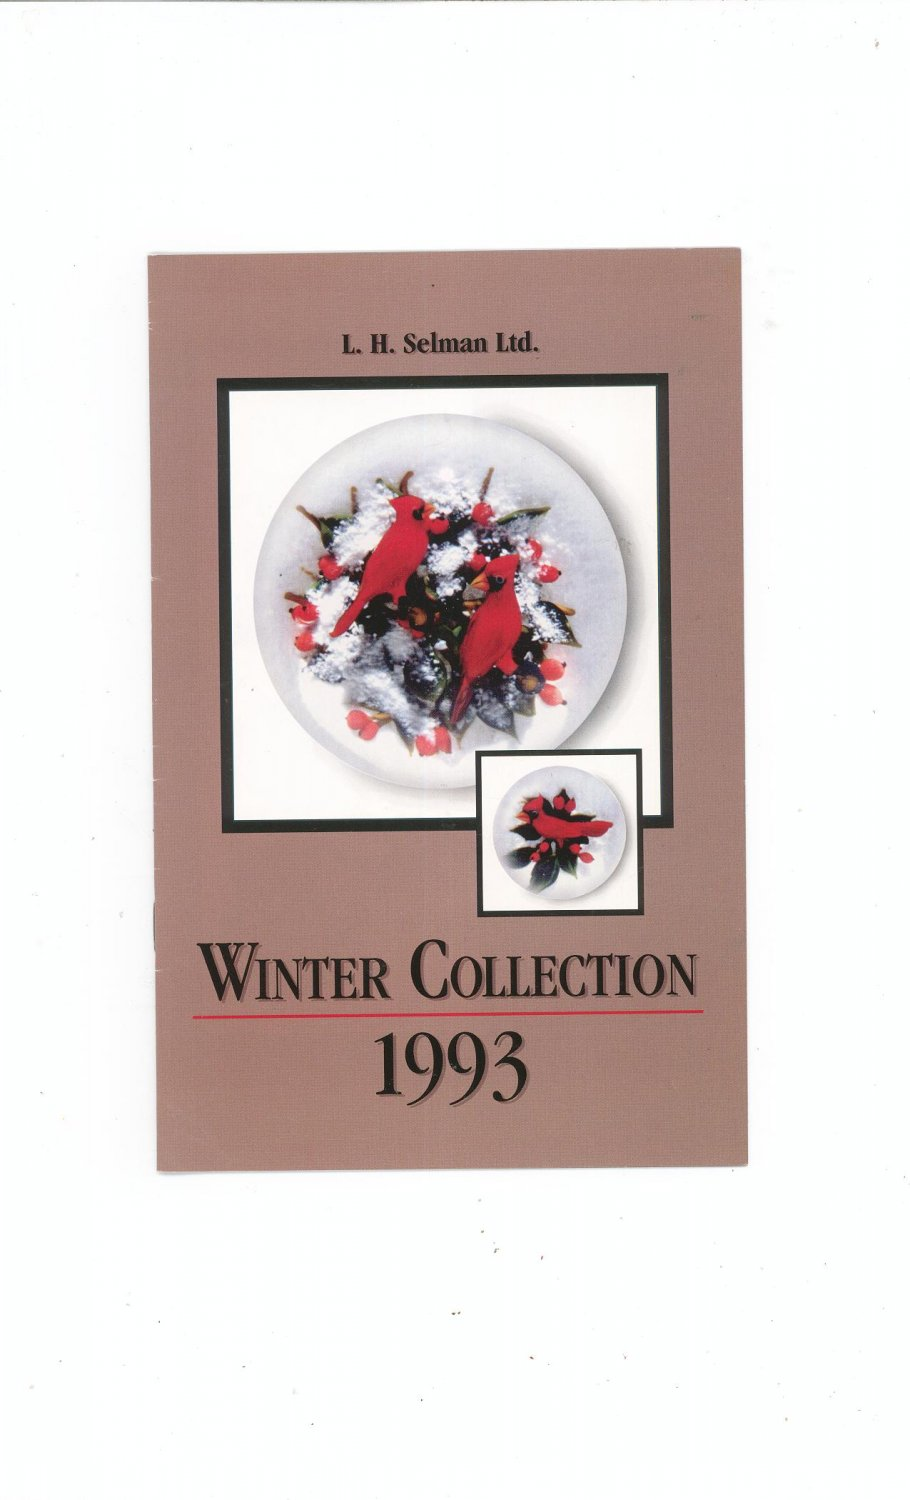 Winter Collection 1993 Catalog / Brochure by L. H. Selman Ltd. Paperweights